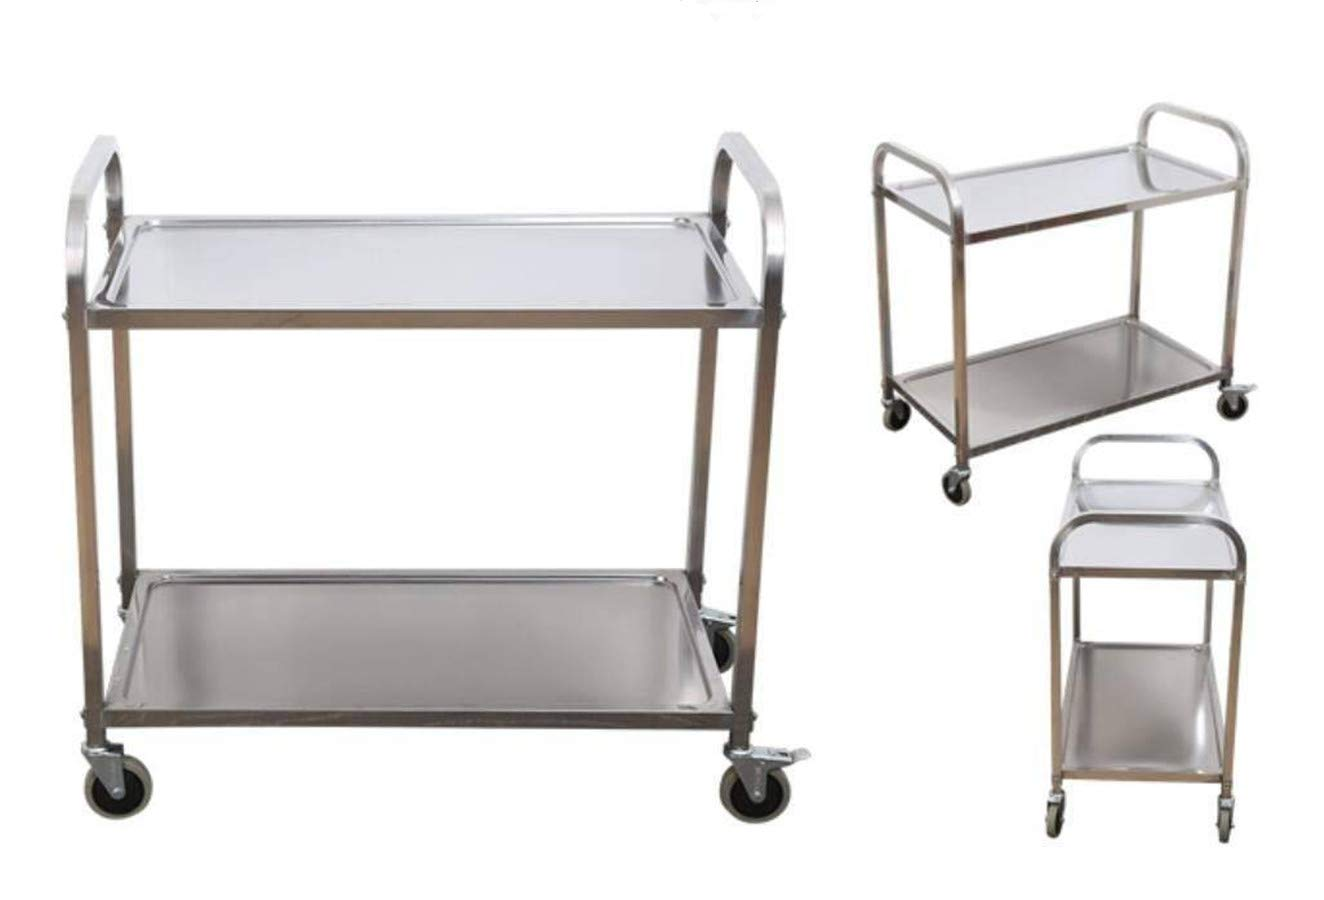 Stainless Steel 2-Shelf Utility Service Storage Cart For Restaurant Catering Hotel Kitchen 400 lb. Capacity Stainless Steel Cart 37.4x20x37.4''